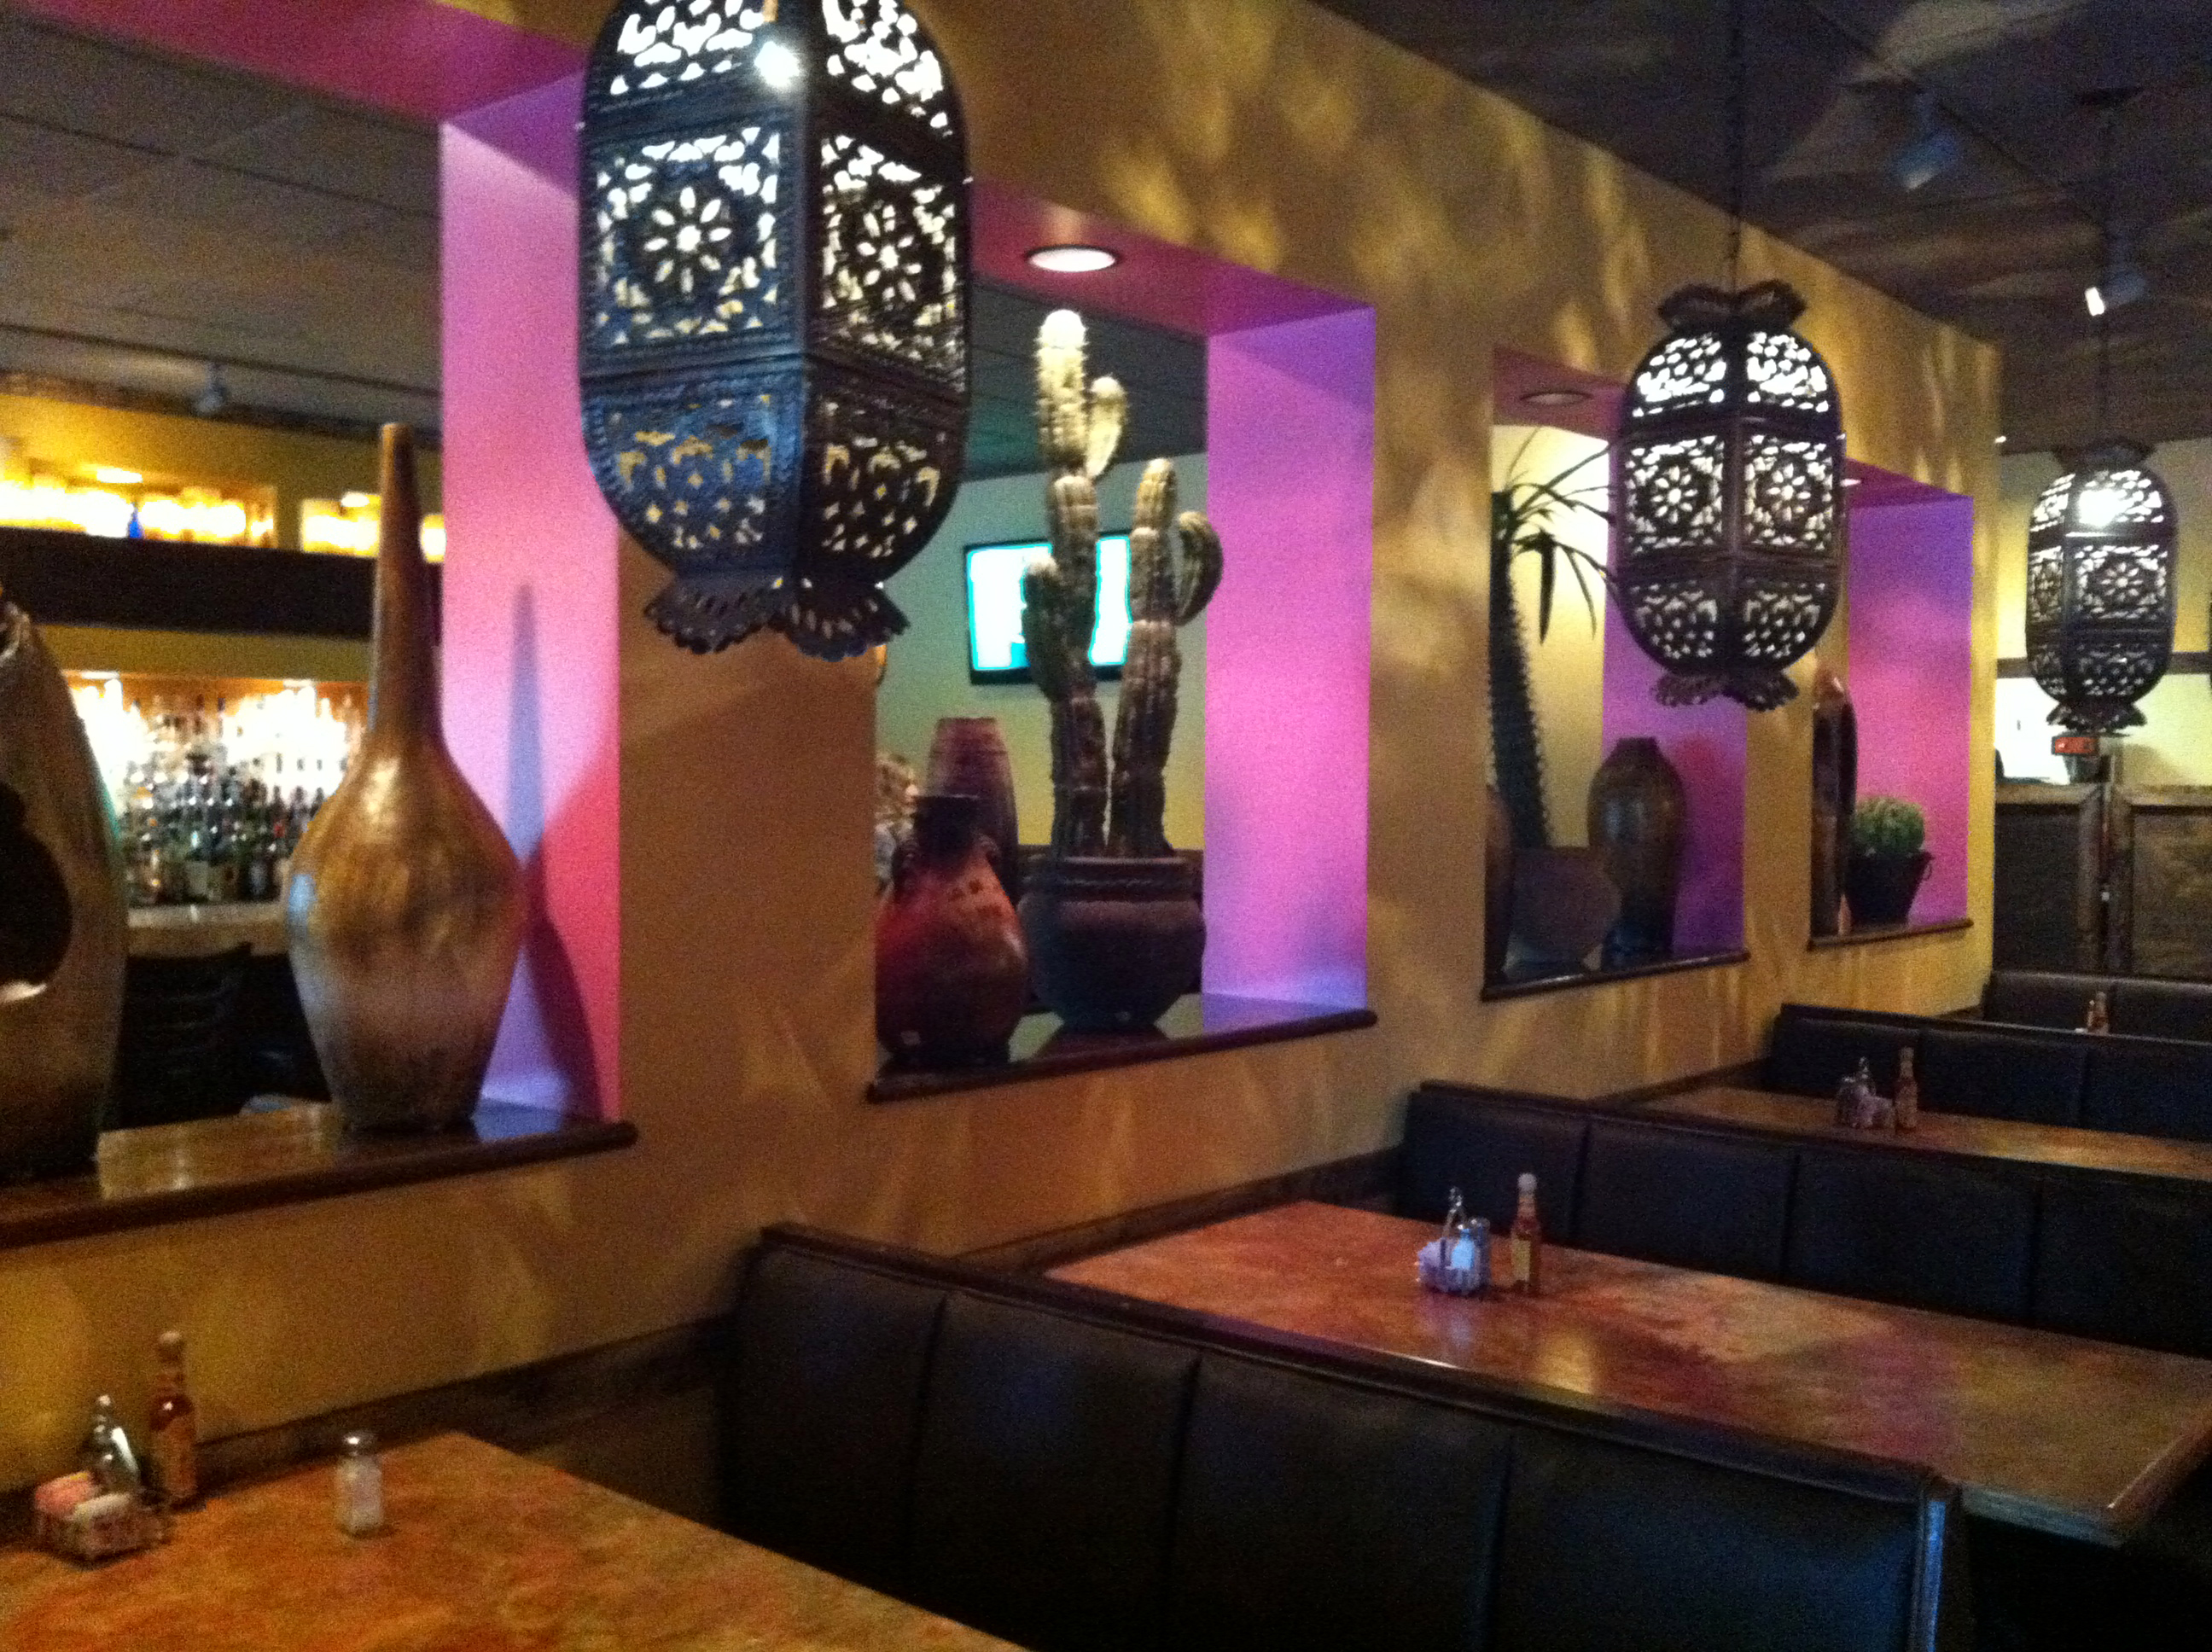 1000 images about mexican restaurant on pinterest. Black Bedroom Furniture Sets. Home Design Ideas